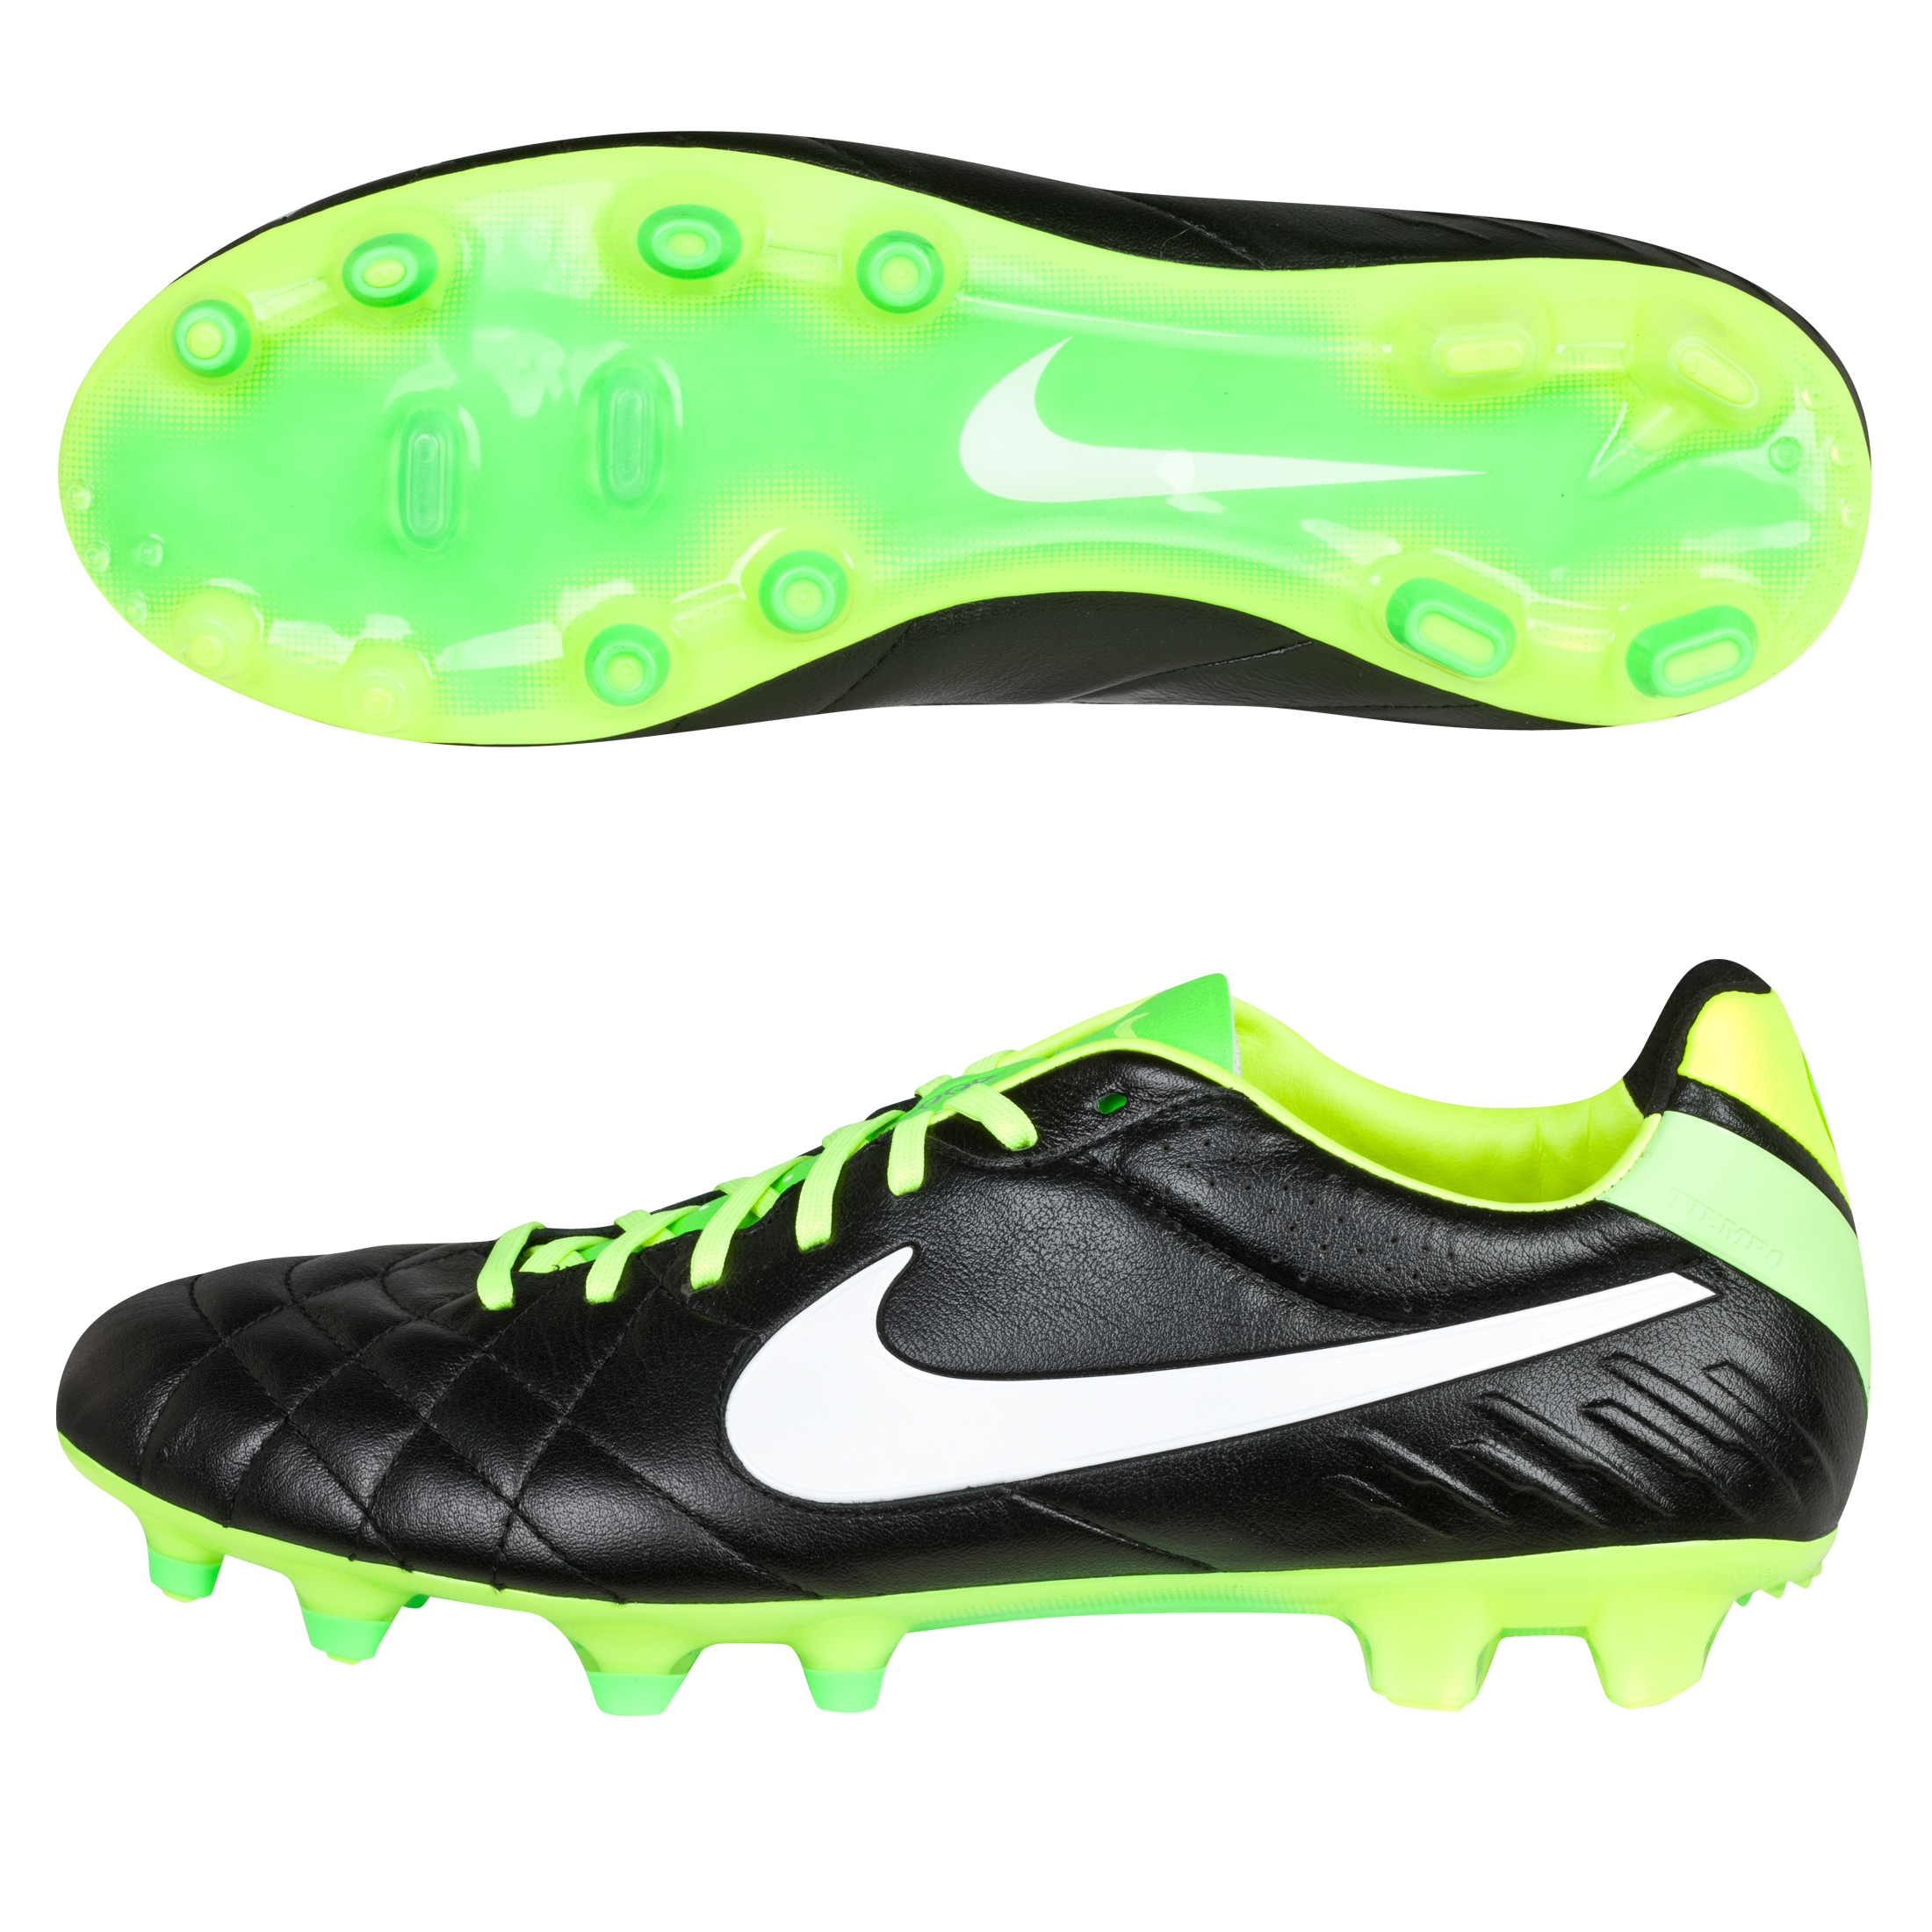 Nike Tiempo Legend IV Firm Ground Football Boots - Black/White/Electric Green